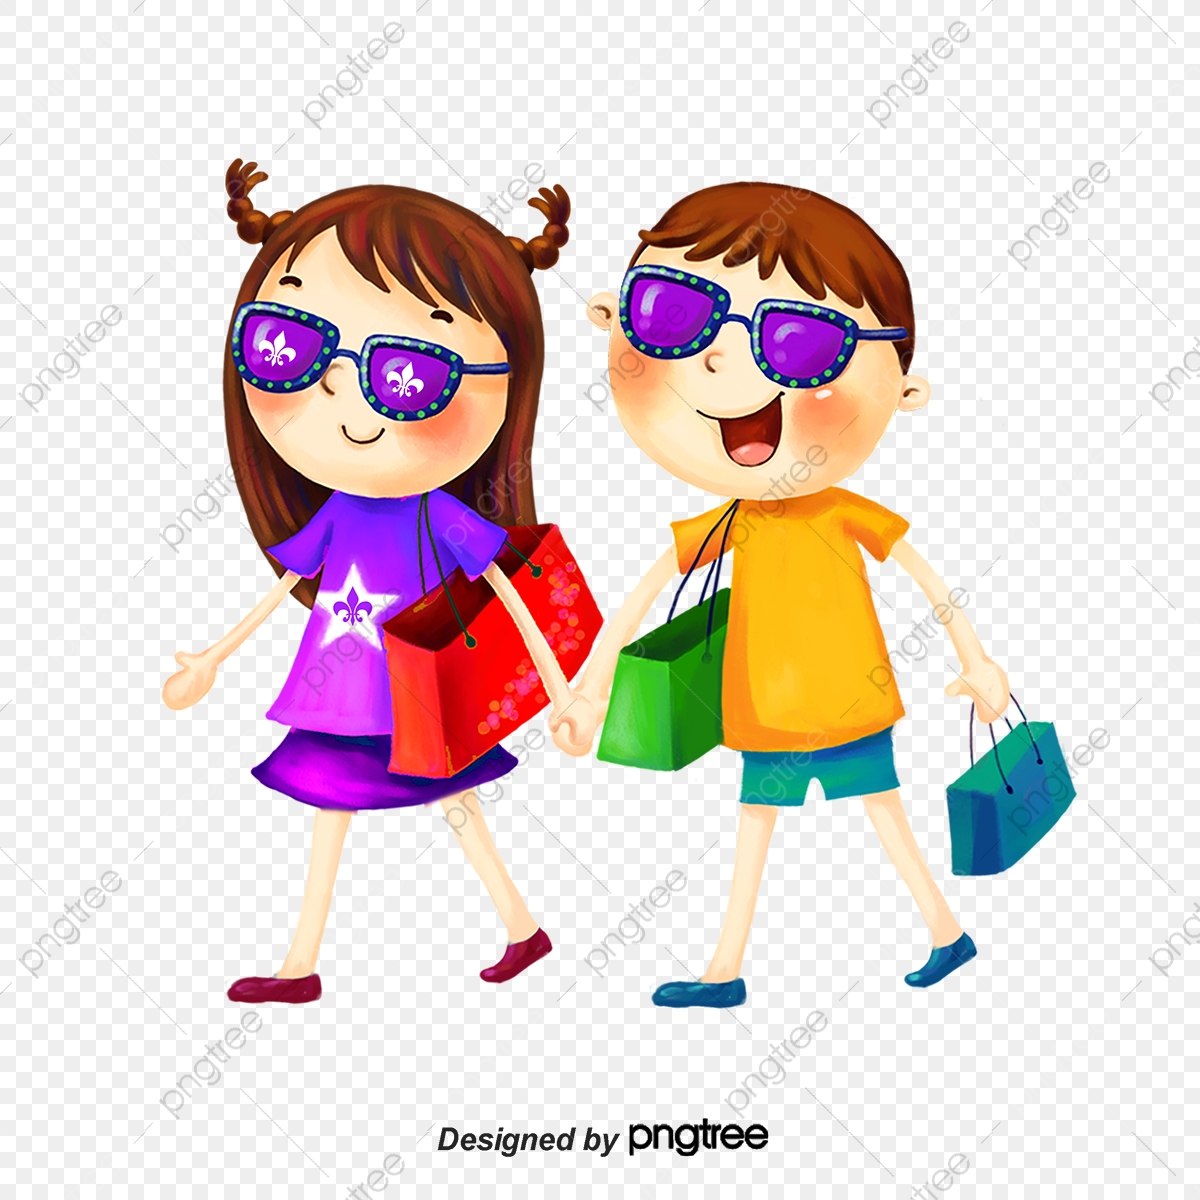 Shopping Girl, Shopping, Girl, Cartoon PNG Transparent Clipart Image.